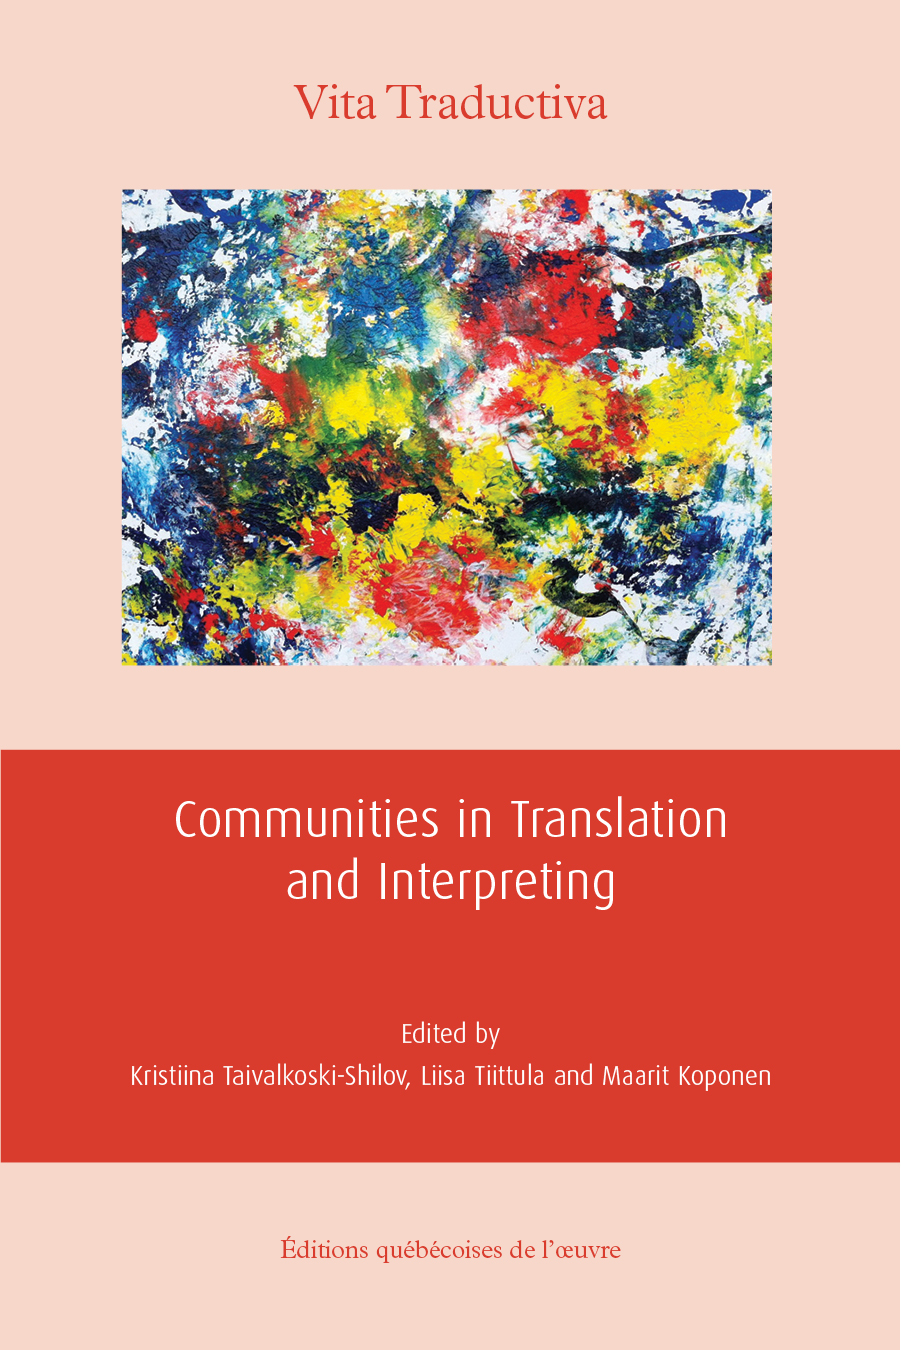 Communities in Translation and Interpreting